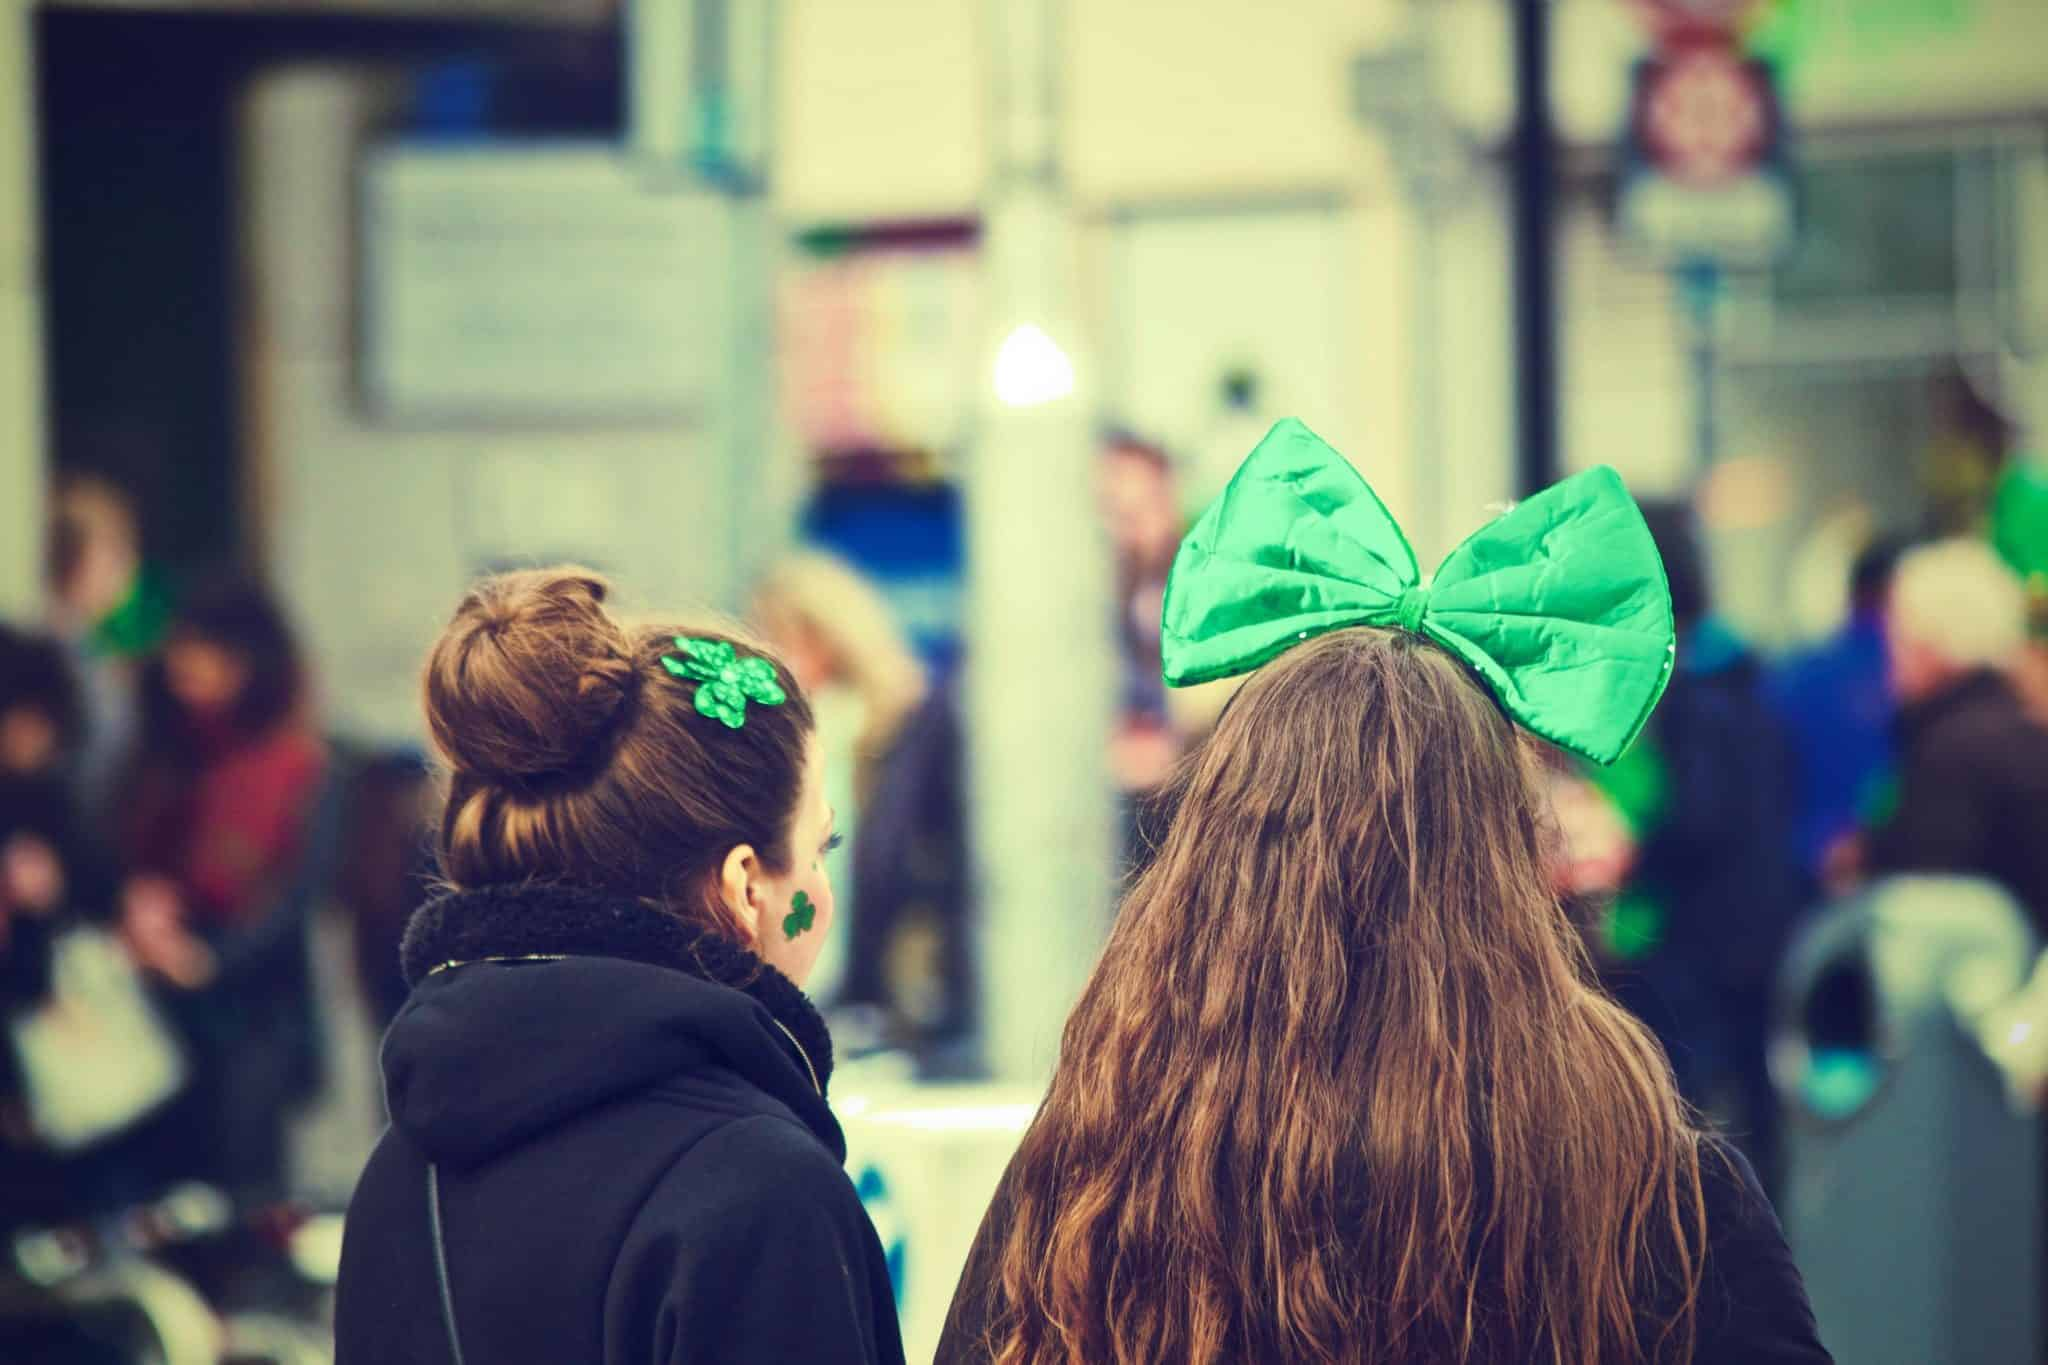 Celebrating St. Patrick's Day in Dublin 15 do's and don'ts